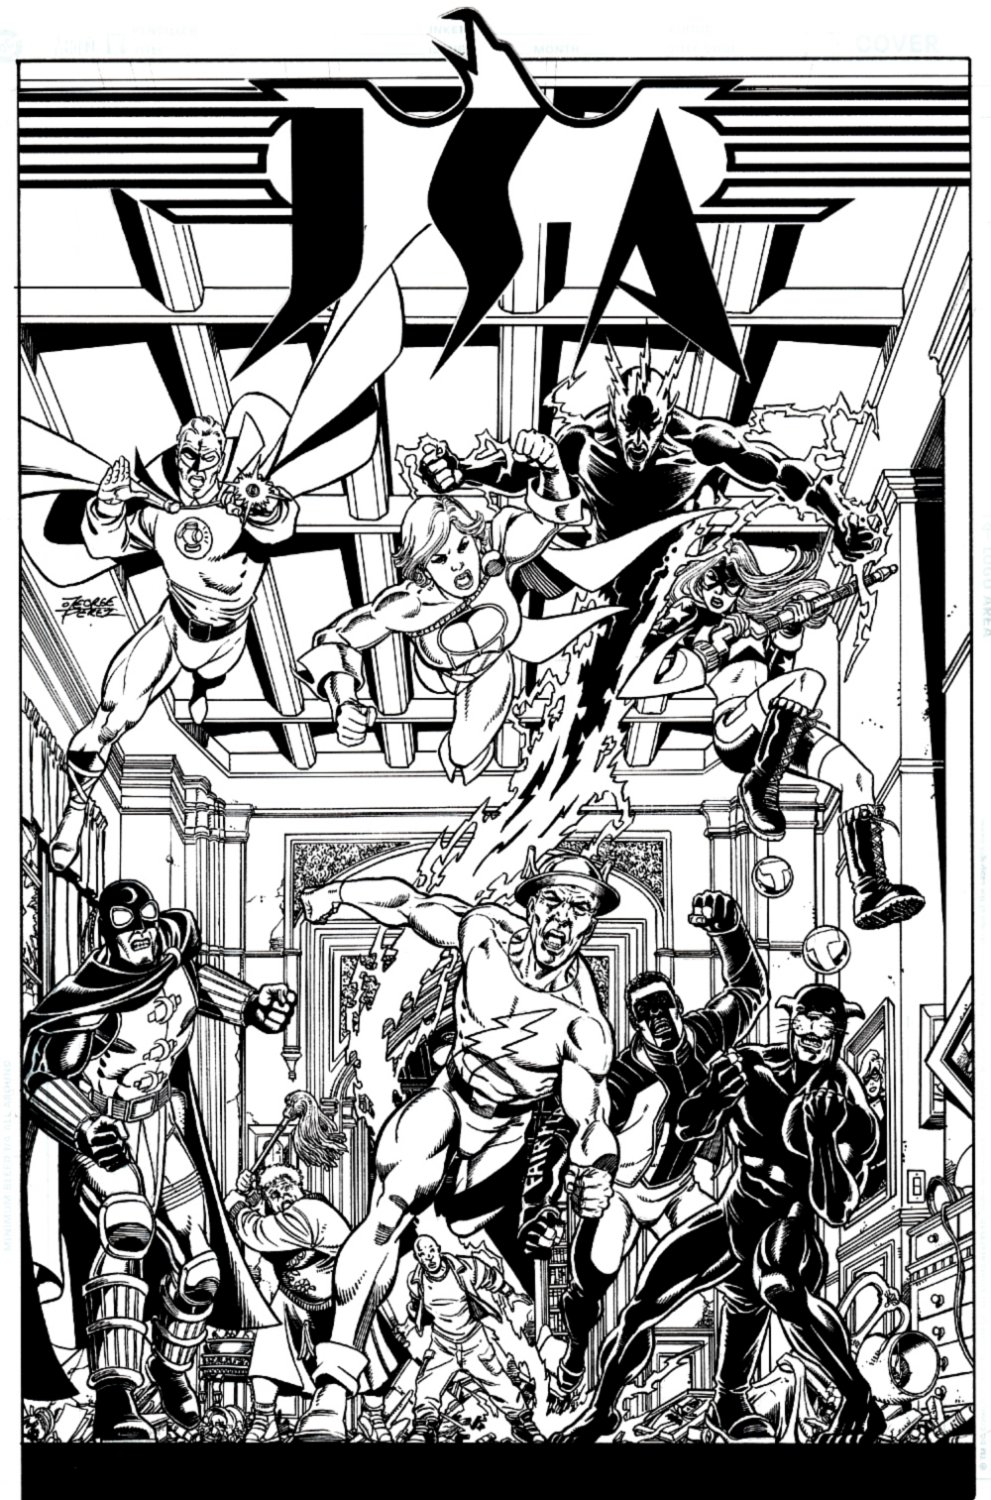 JSA #84 Cover (10 Golden Age & Current Heroes!) 2006